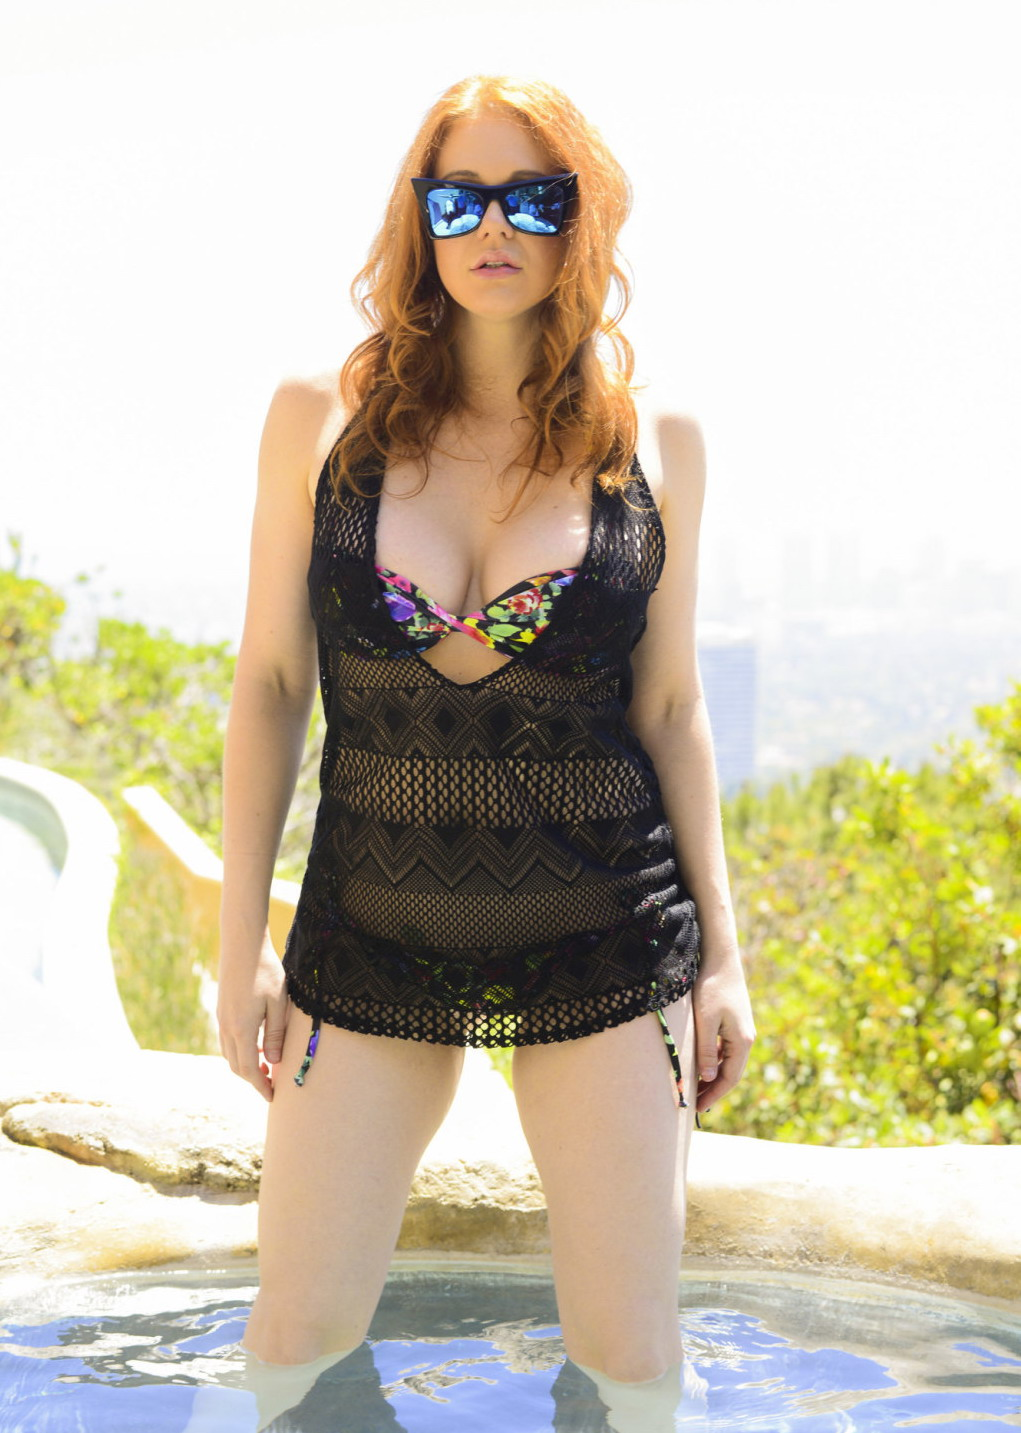 Maitland Ward Cleavage Pi...